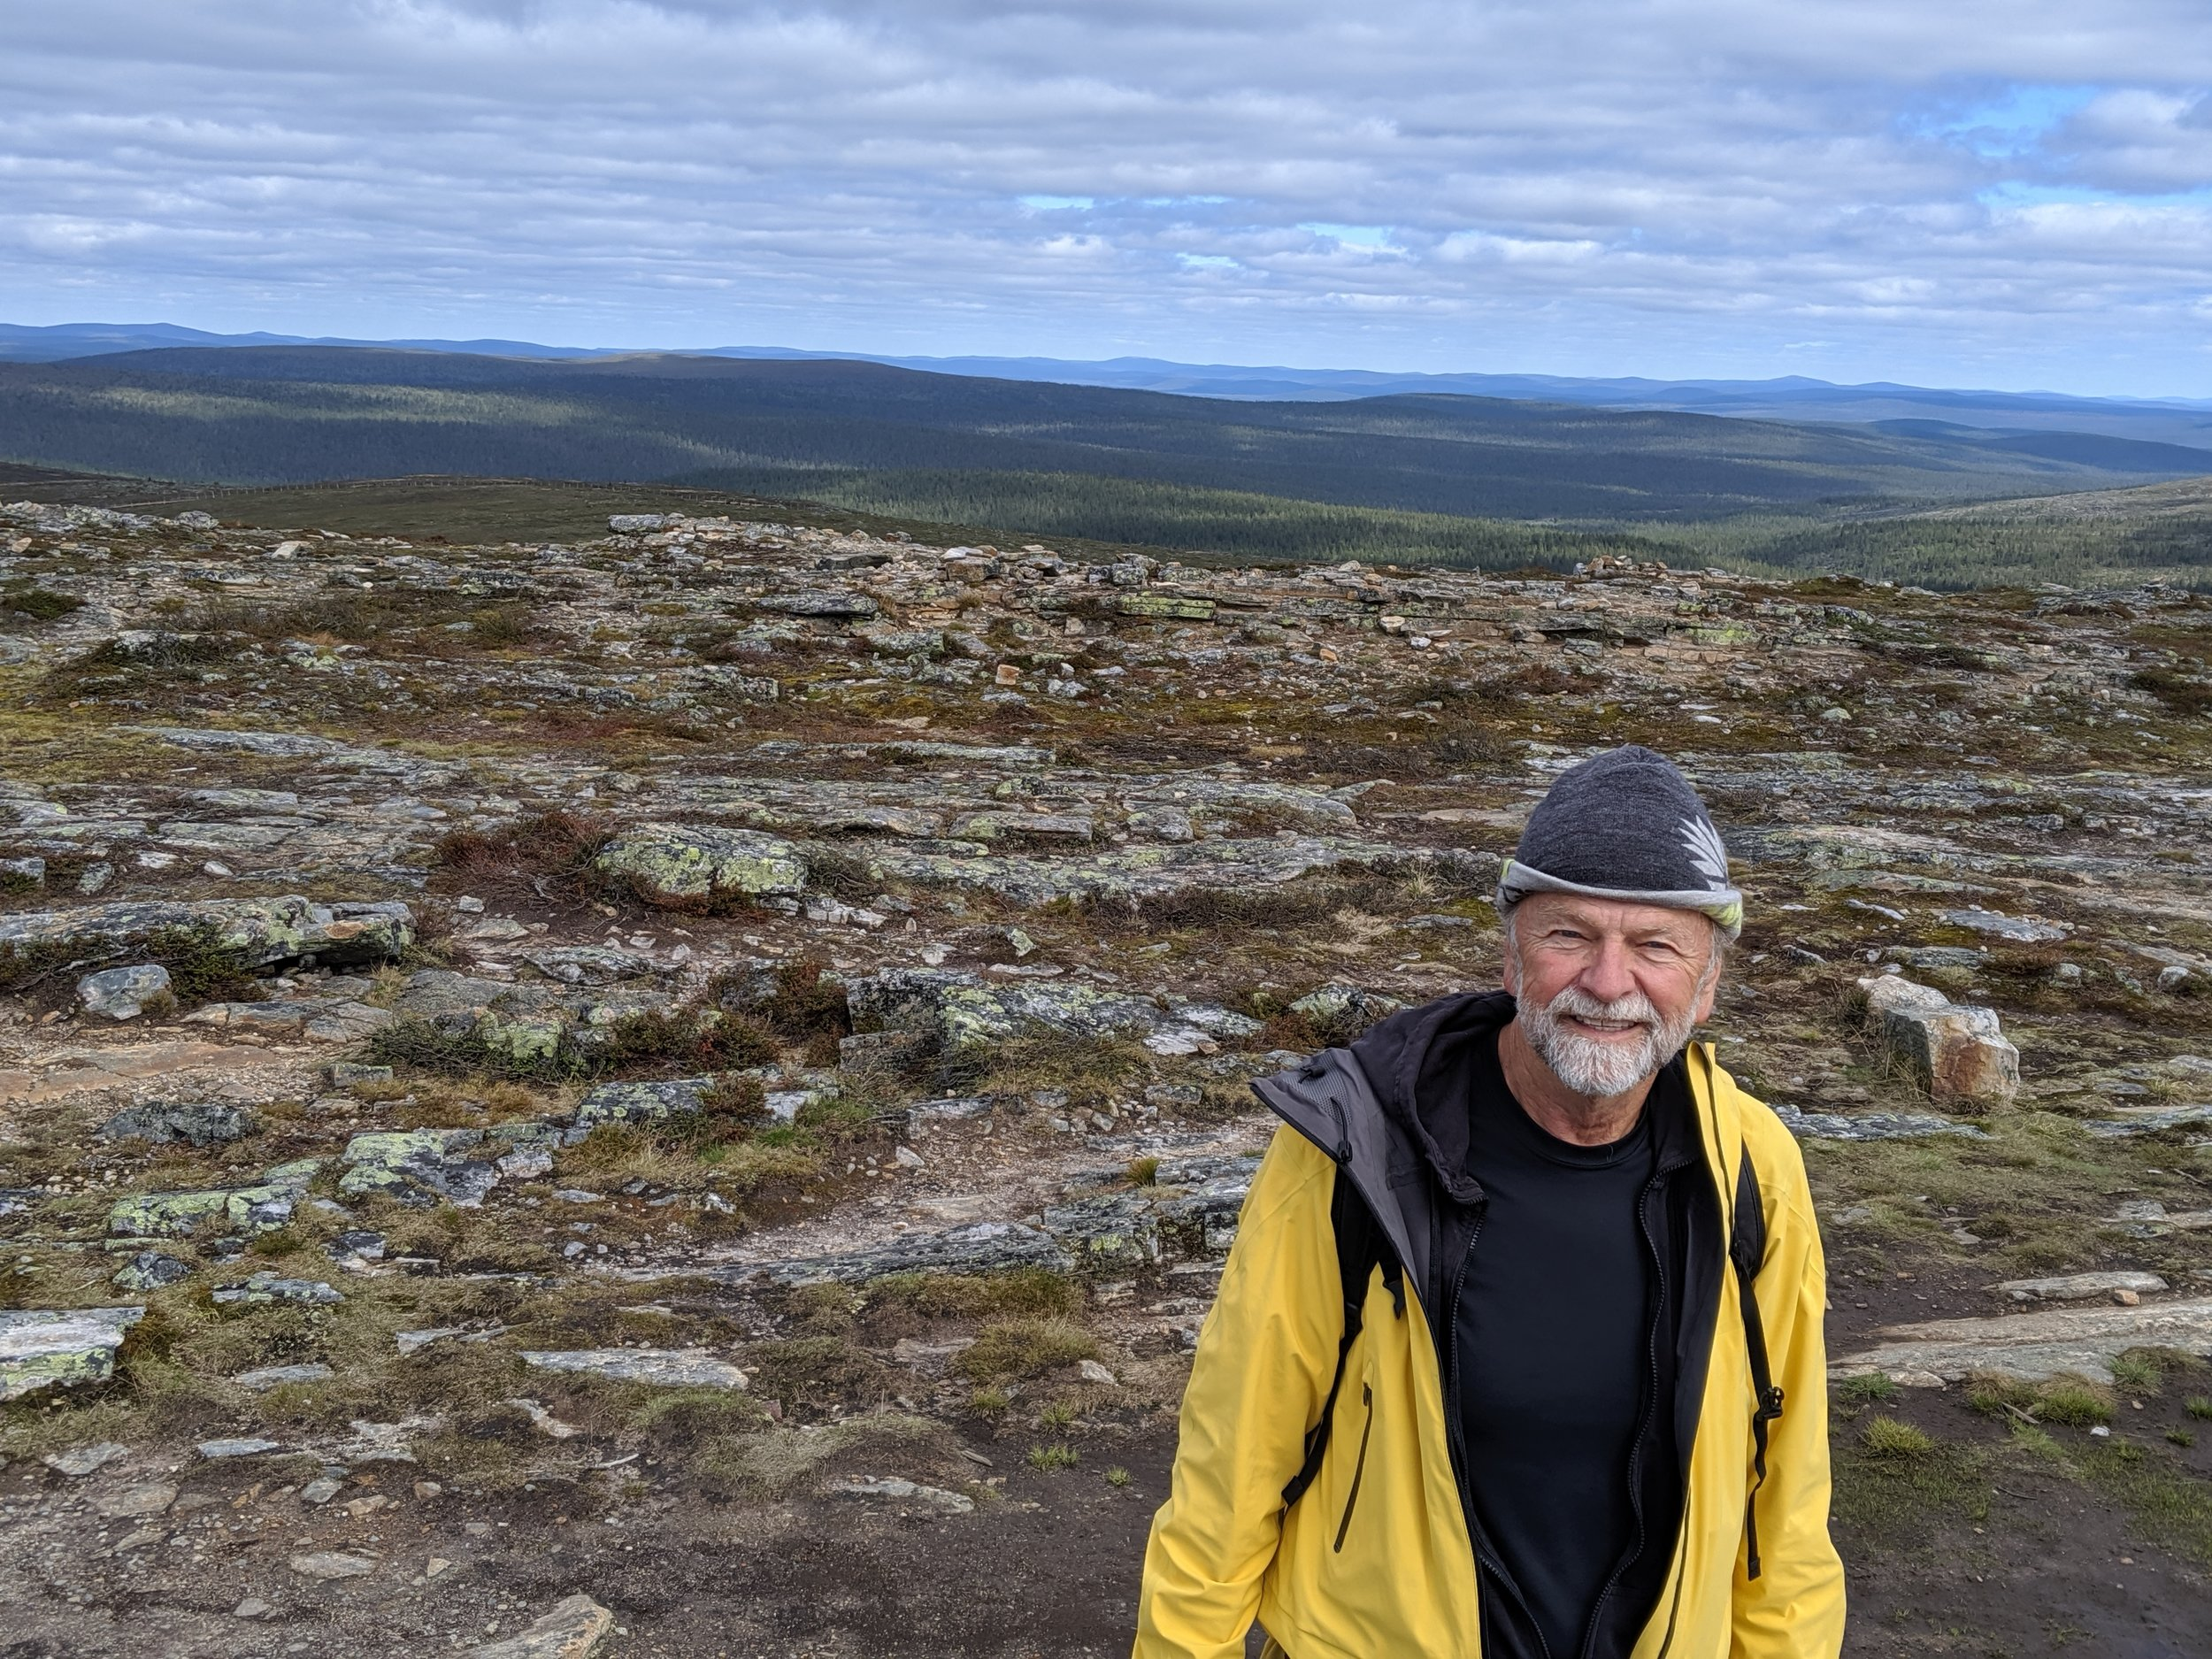 We hiked to the top of a fell (in Finland small mountains are called fells) . From the top we could see 50 miles or more in all directions.